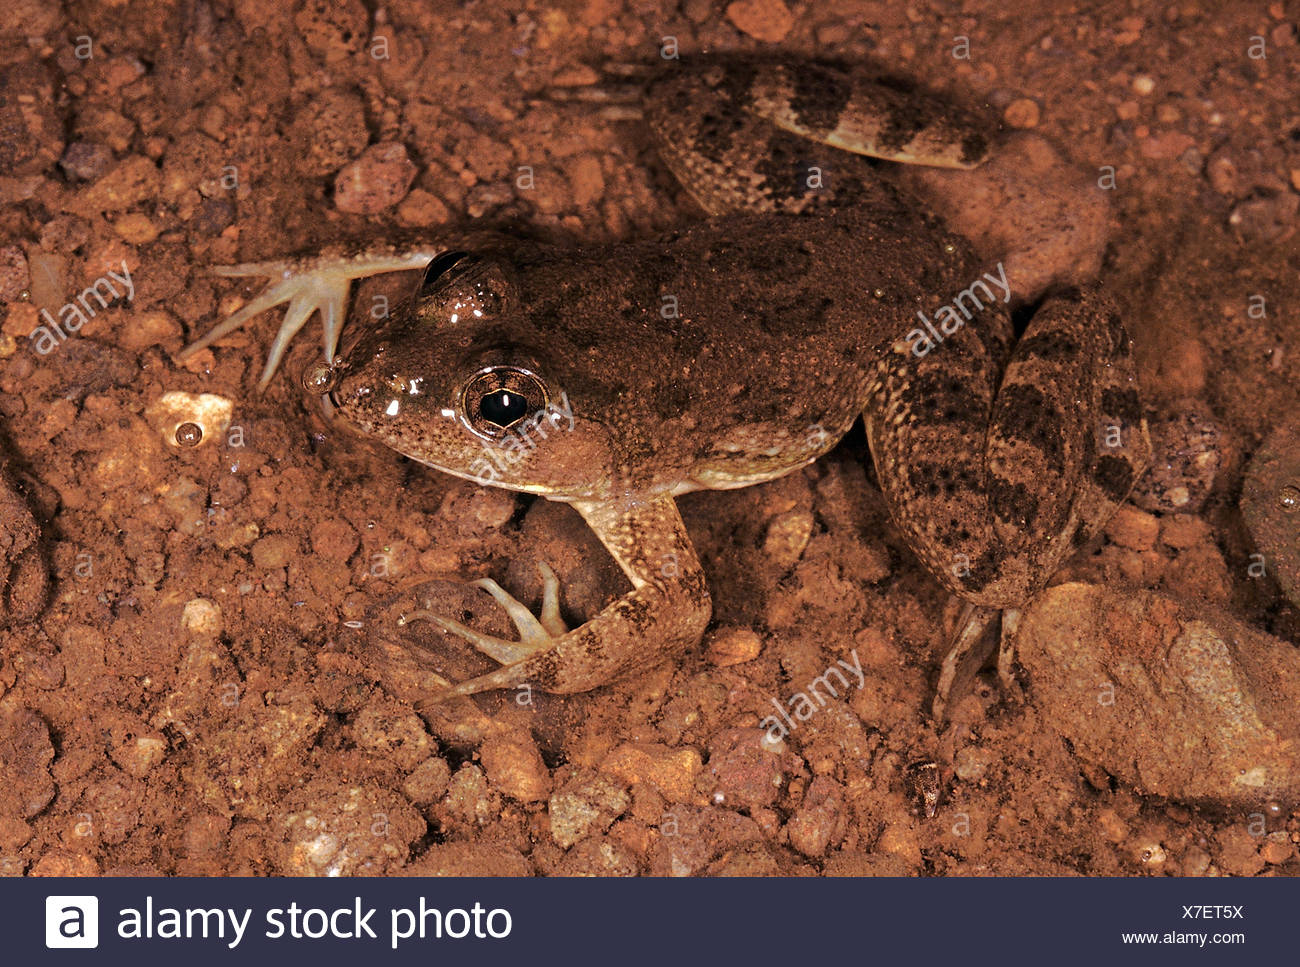 Occidozyga Cyanophlyctis. Indian skipping frog. A medium sized frog usually found in or immediately adjacent to water - Stock Image